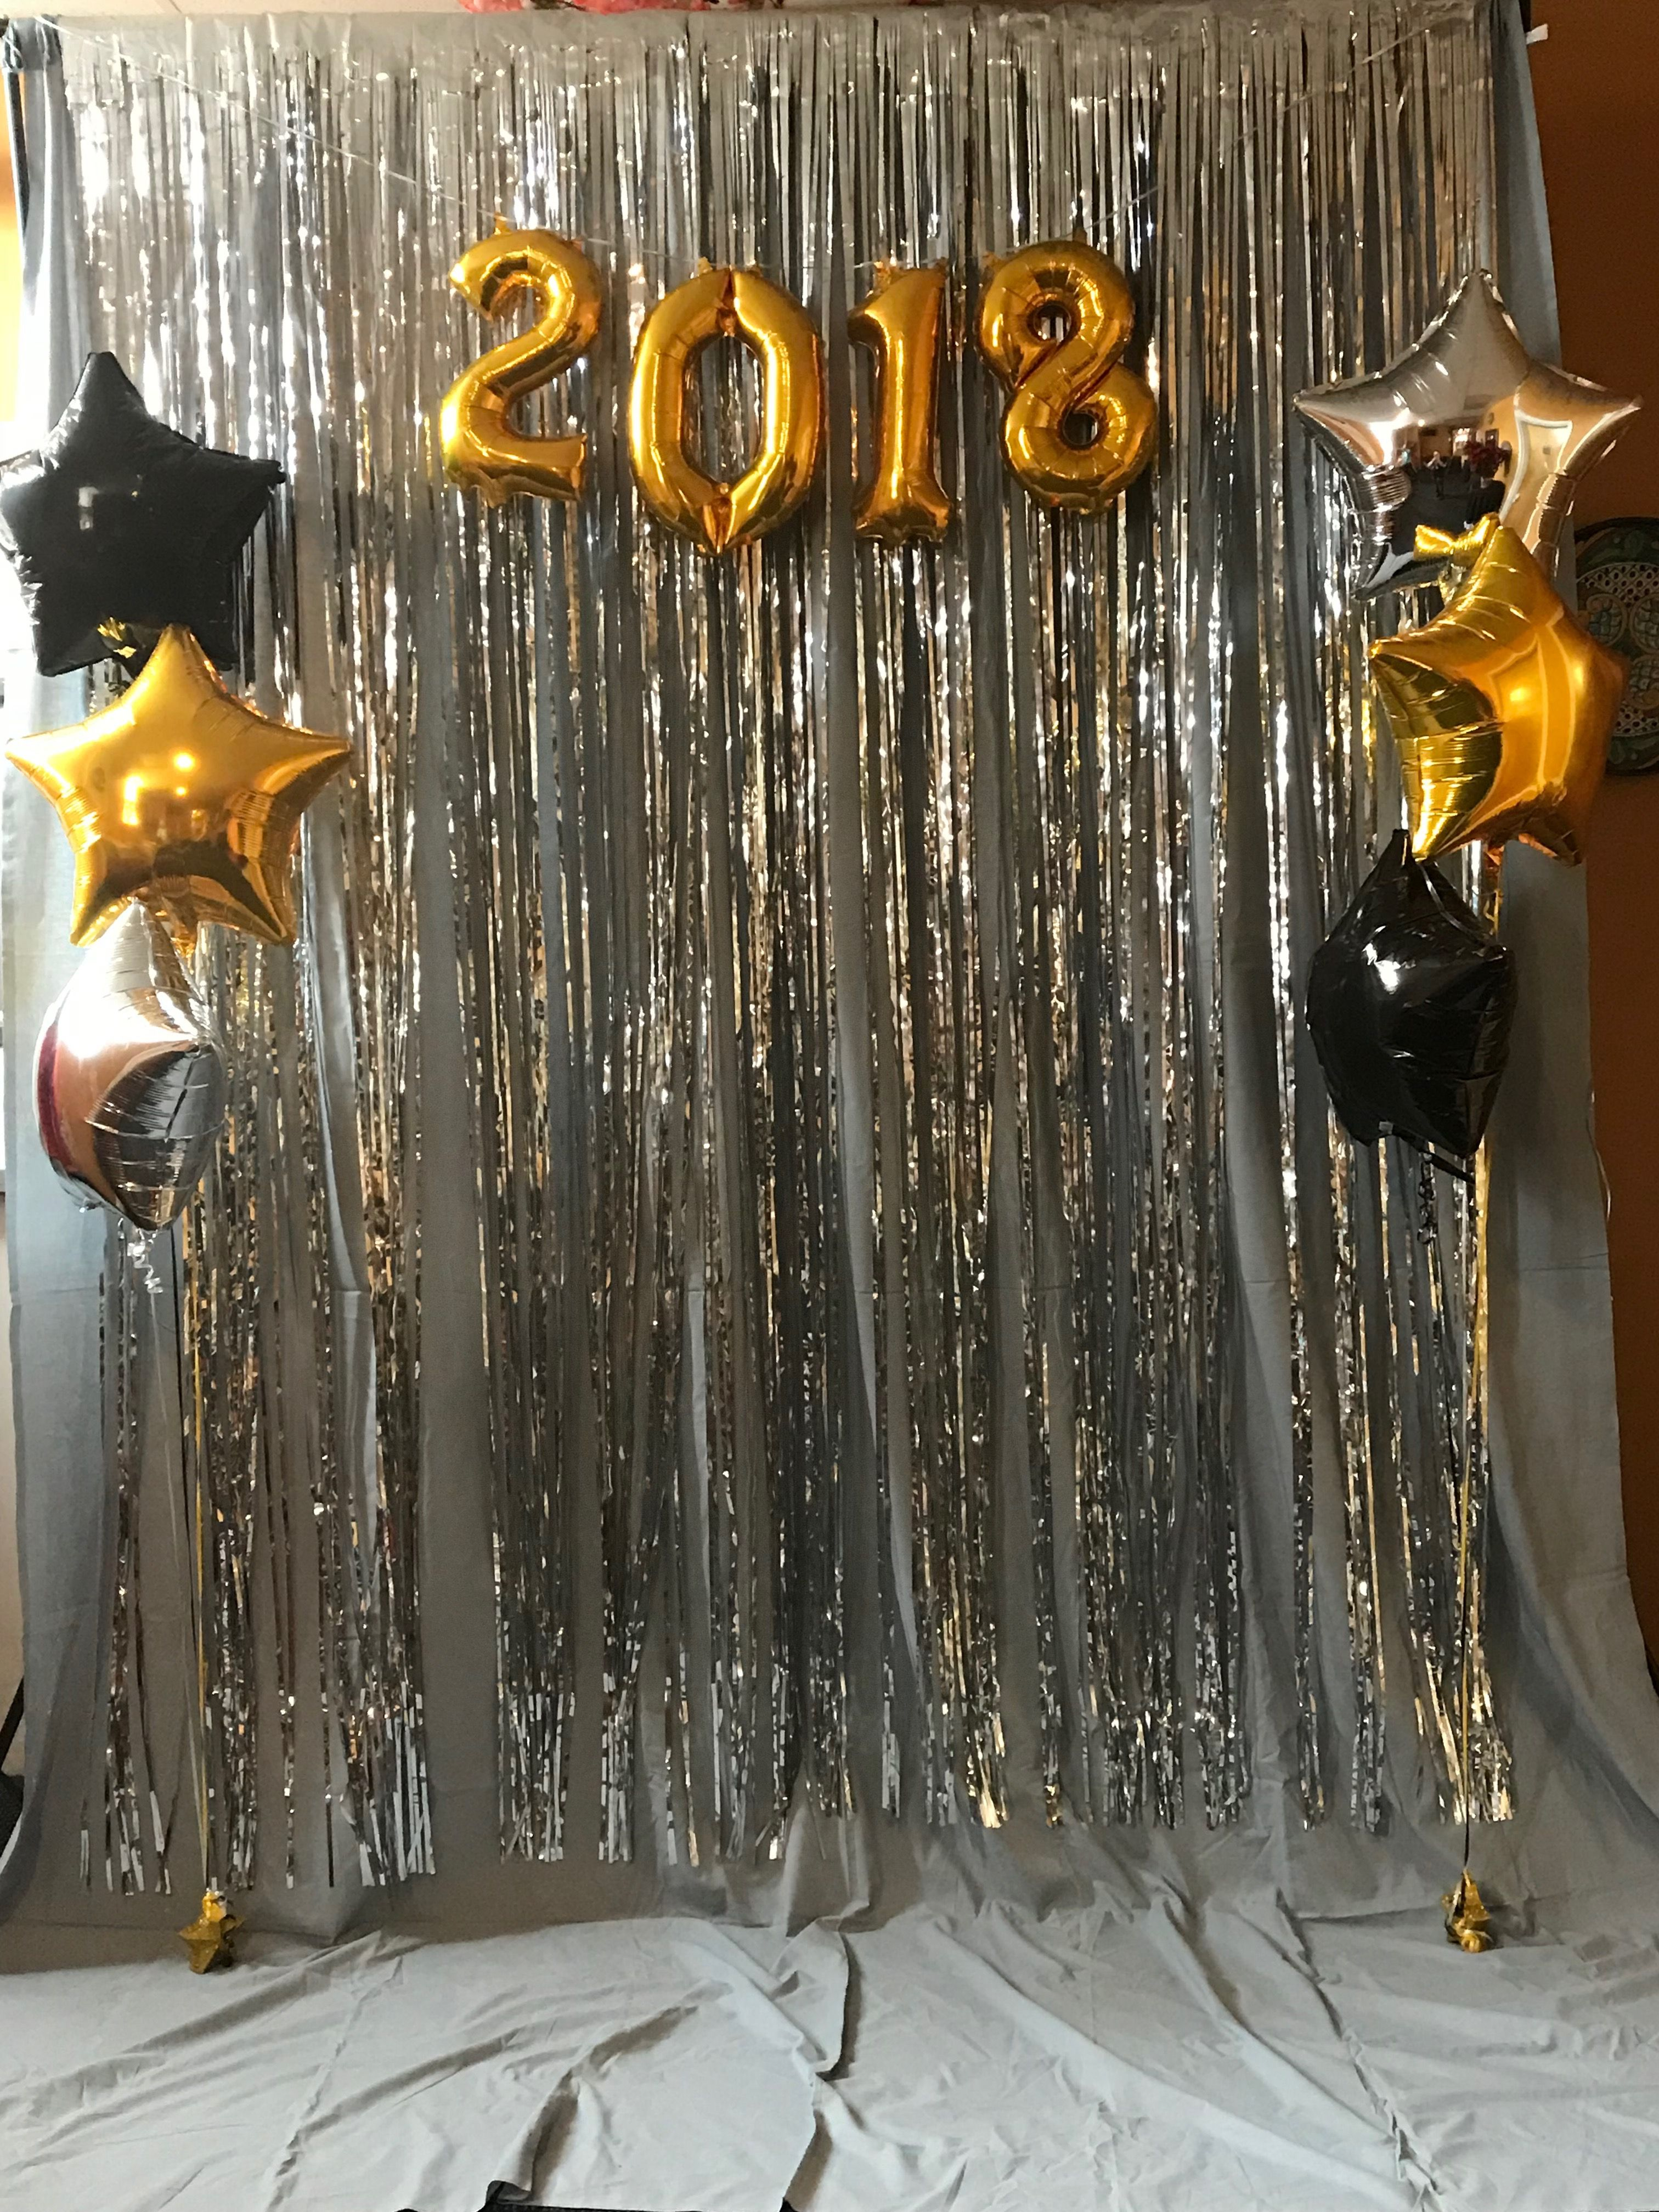 New Year S Eve Photo Booth This Photobooth By Jenn S Kraft Room W New Years Eve Decorations New Years Eve Party Ideas Decorations New Year S Party Decorations